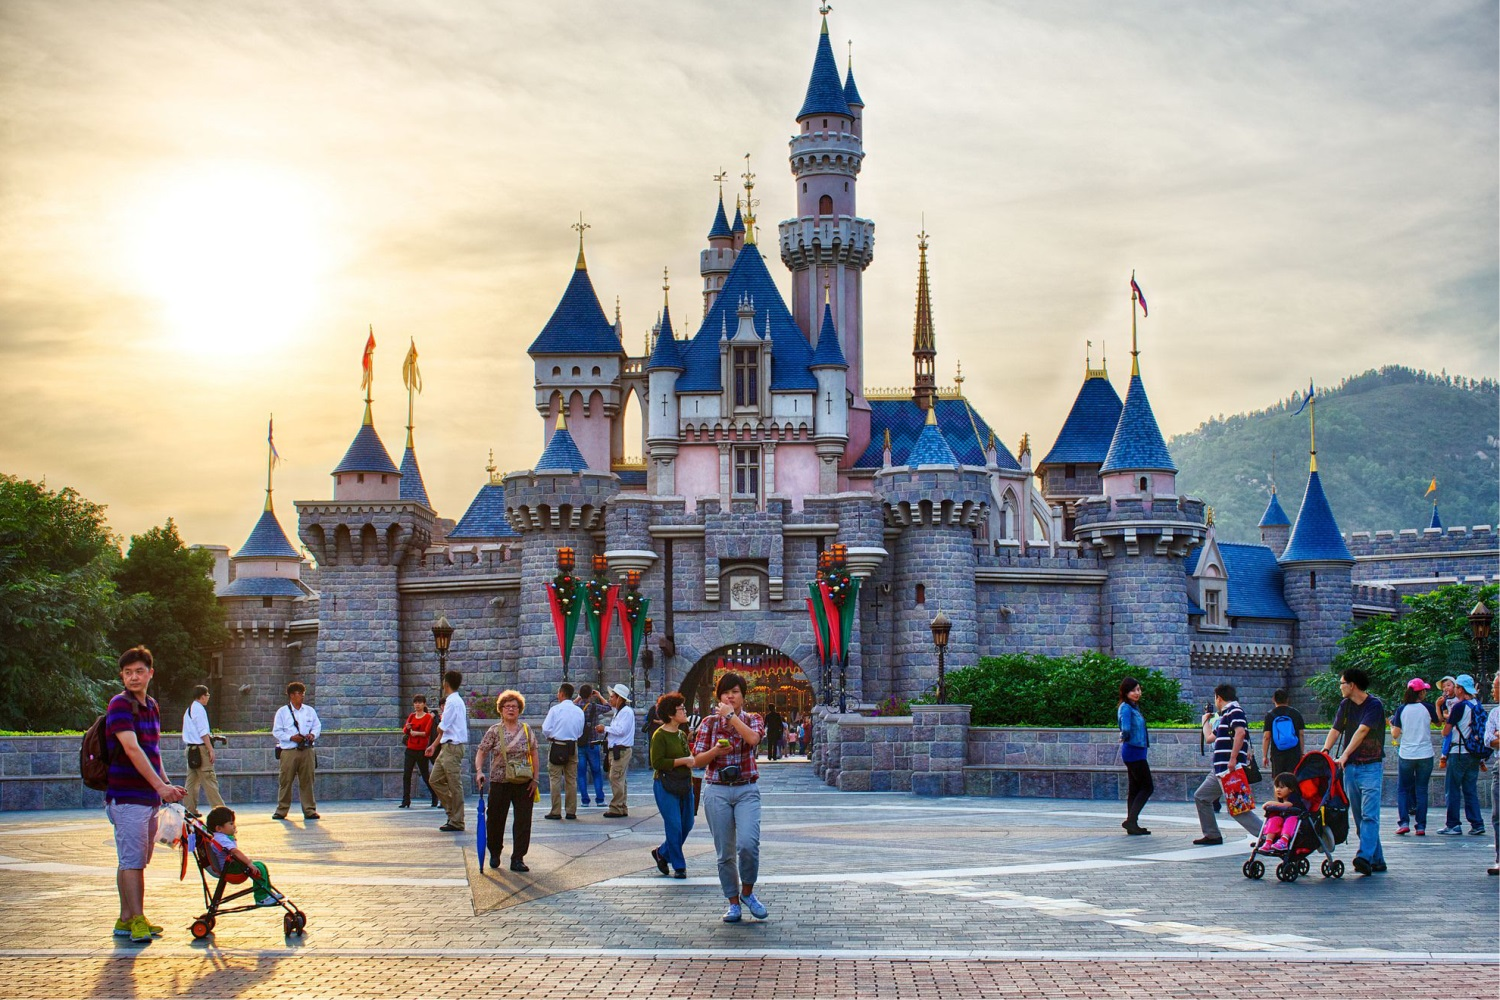 7 best tourist attractions in hong kong with photos and map tour hong kong disneyland tourvisitor publicscrutiny Images